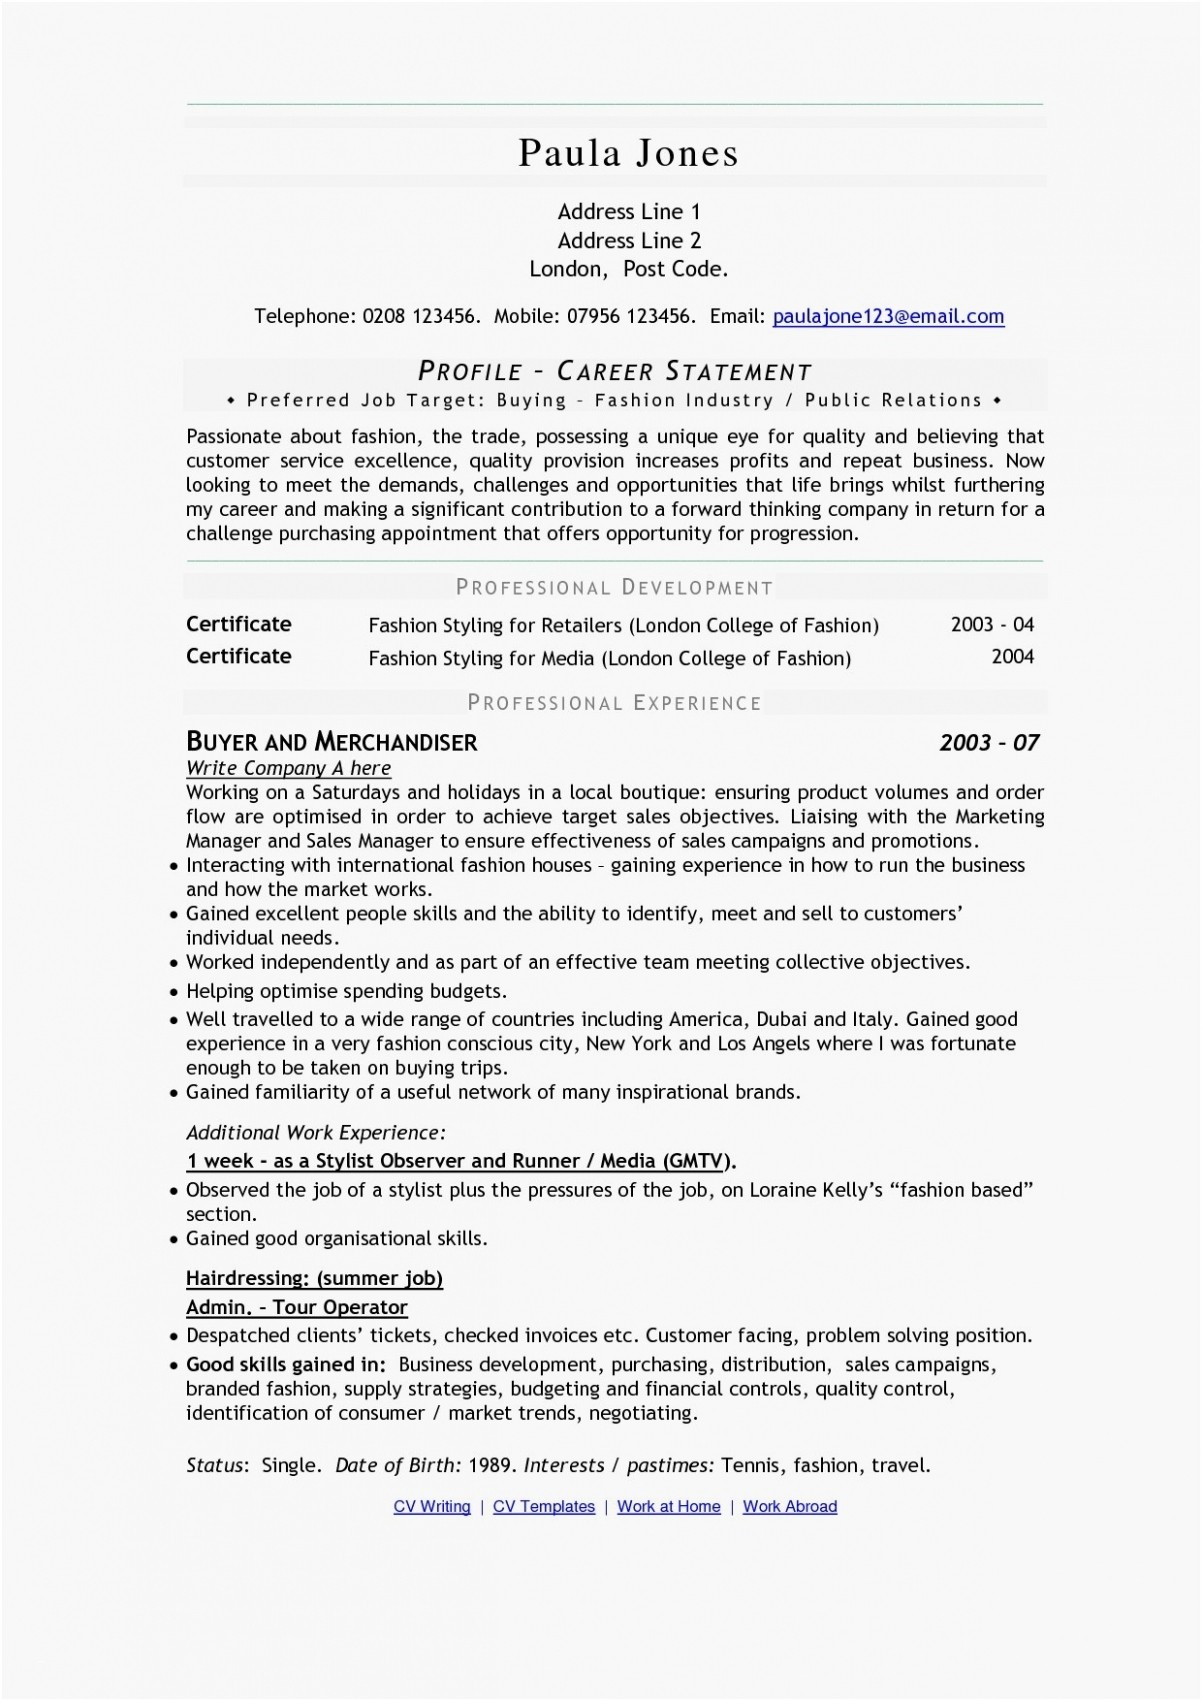 Angular 2 Resume - Angularjs Developer Resume Fresh asp Net Mvc Resume Net Developer